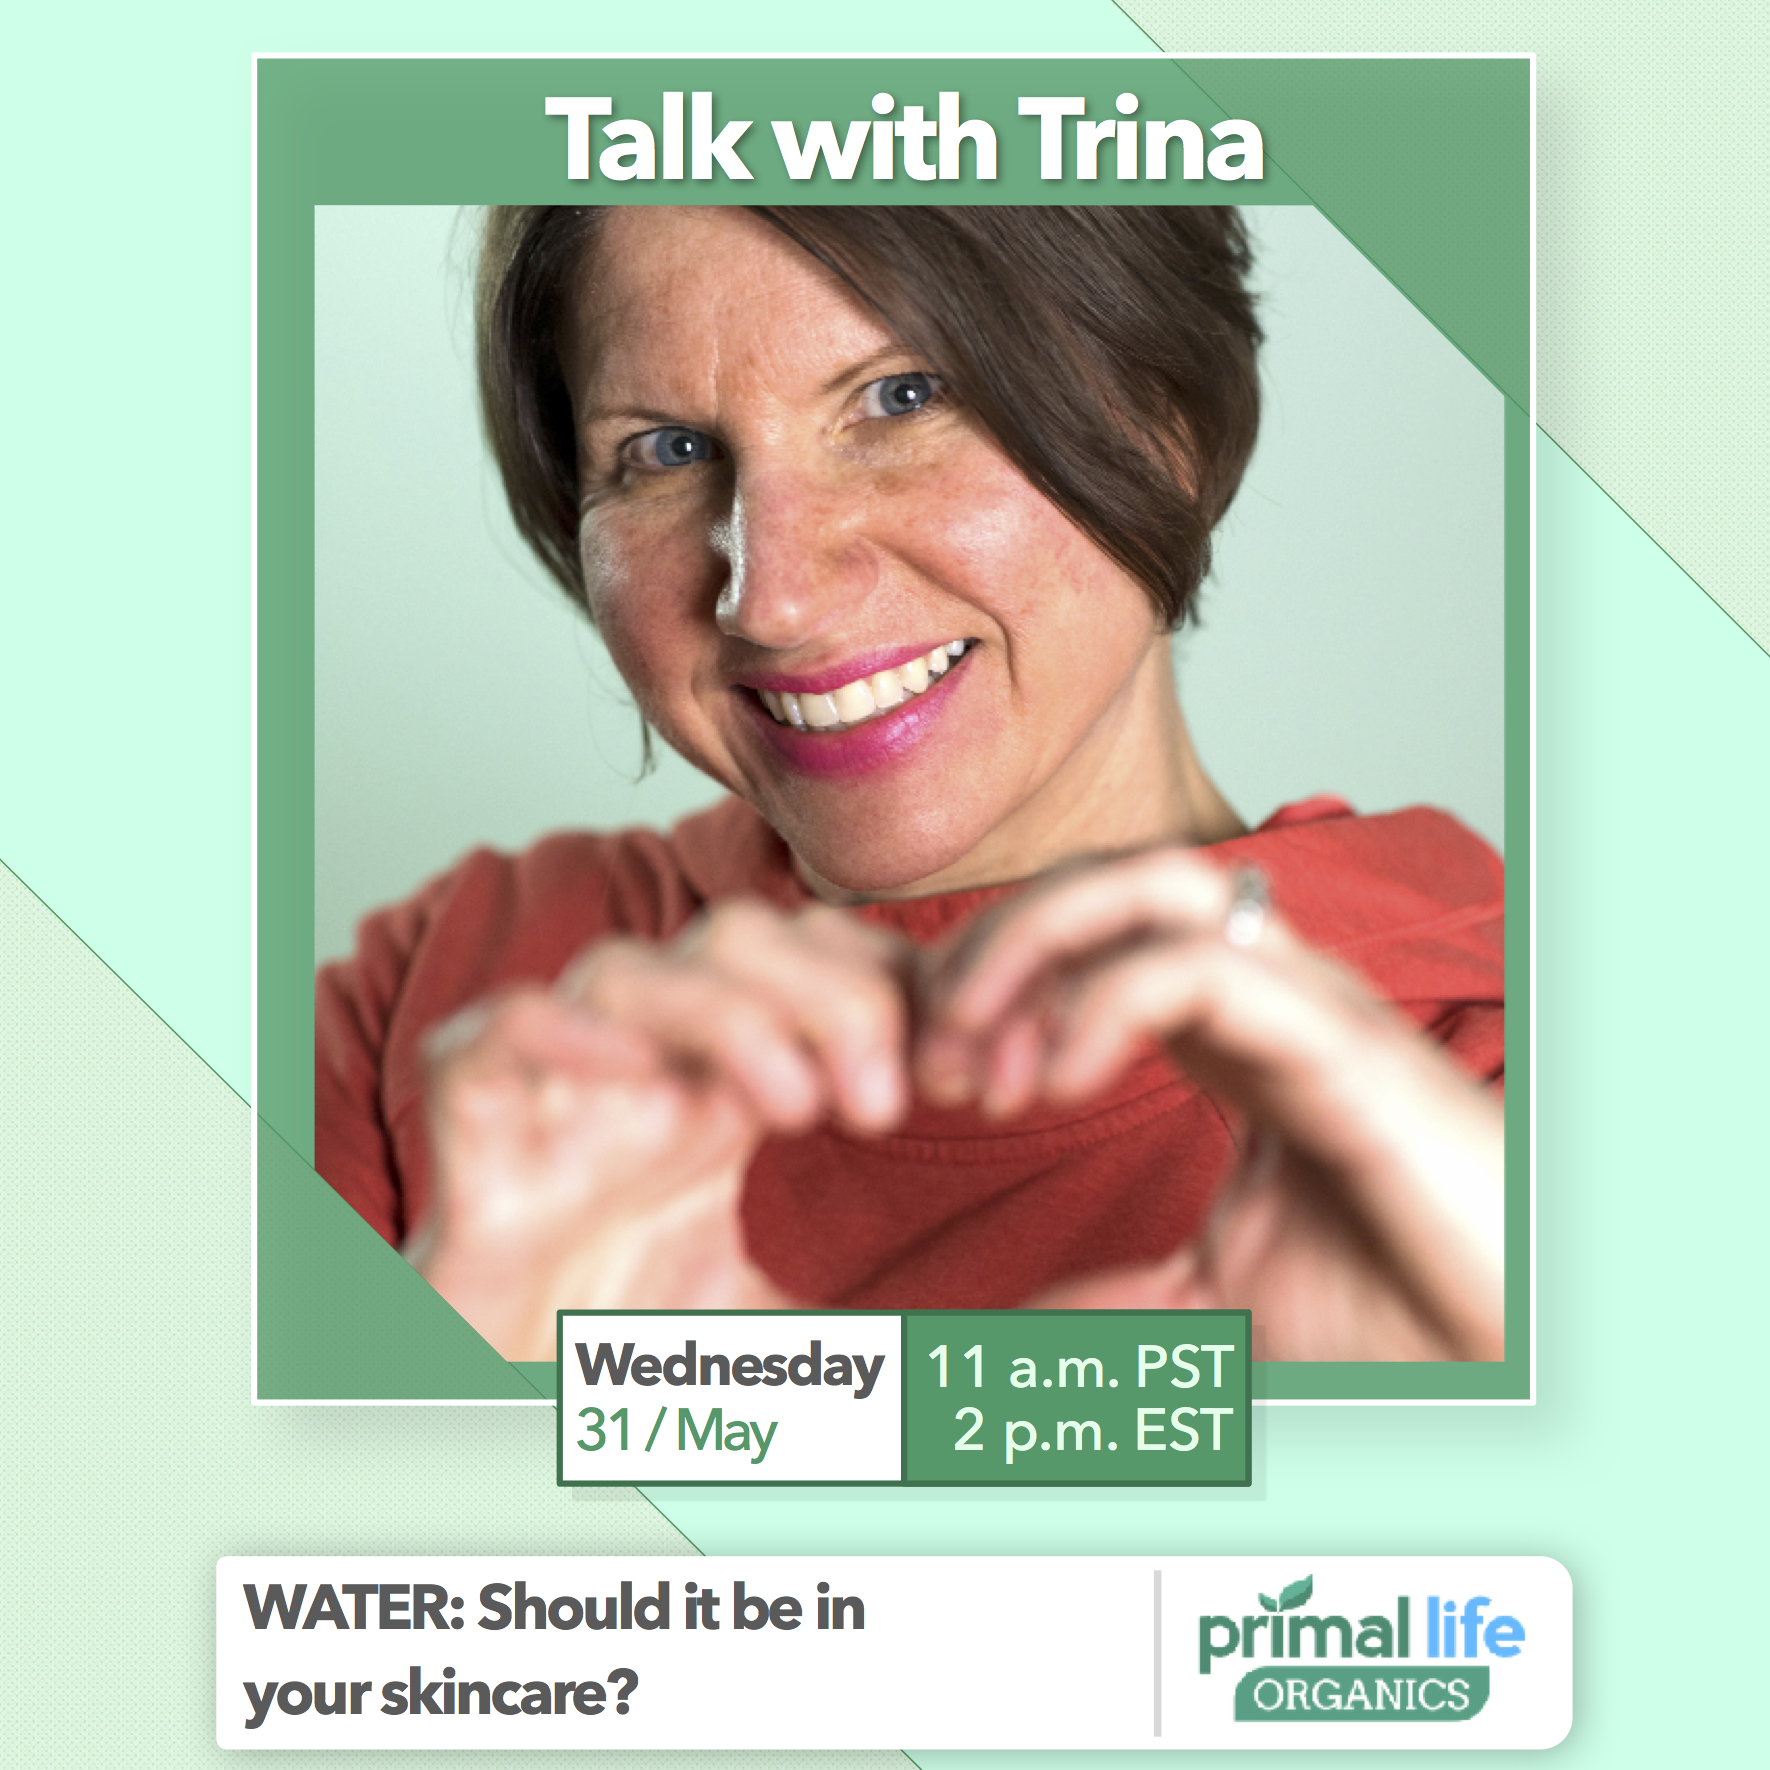 I'm going LIVE on Facebook to talk about water in skincare. Is it good? Bad? Toxic?! Find out on Wednesday, May 31 at 2 p.m. EST. when I go live on Facebook and answer any questions you have.